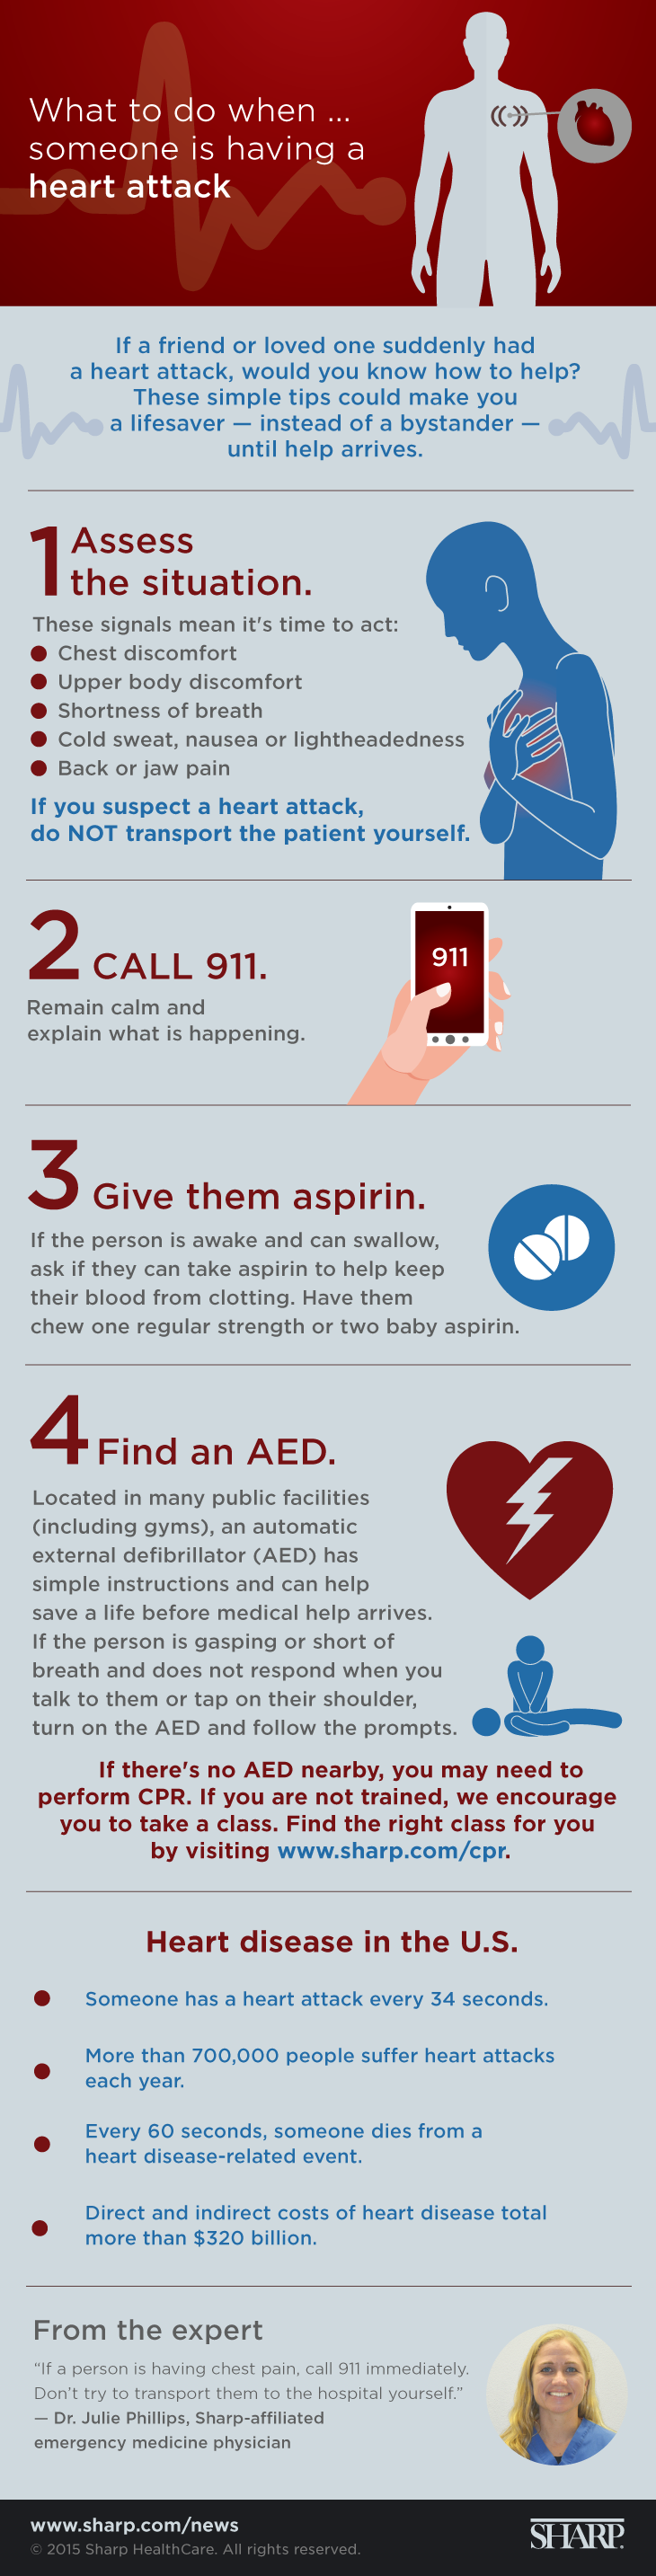 What to do when someone is having a heart attack